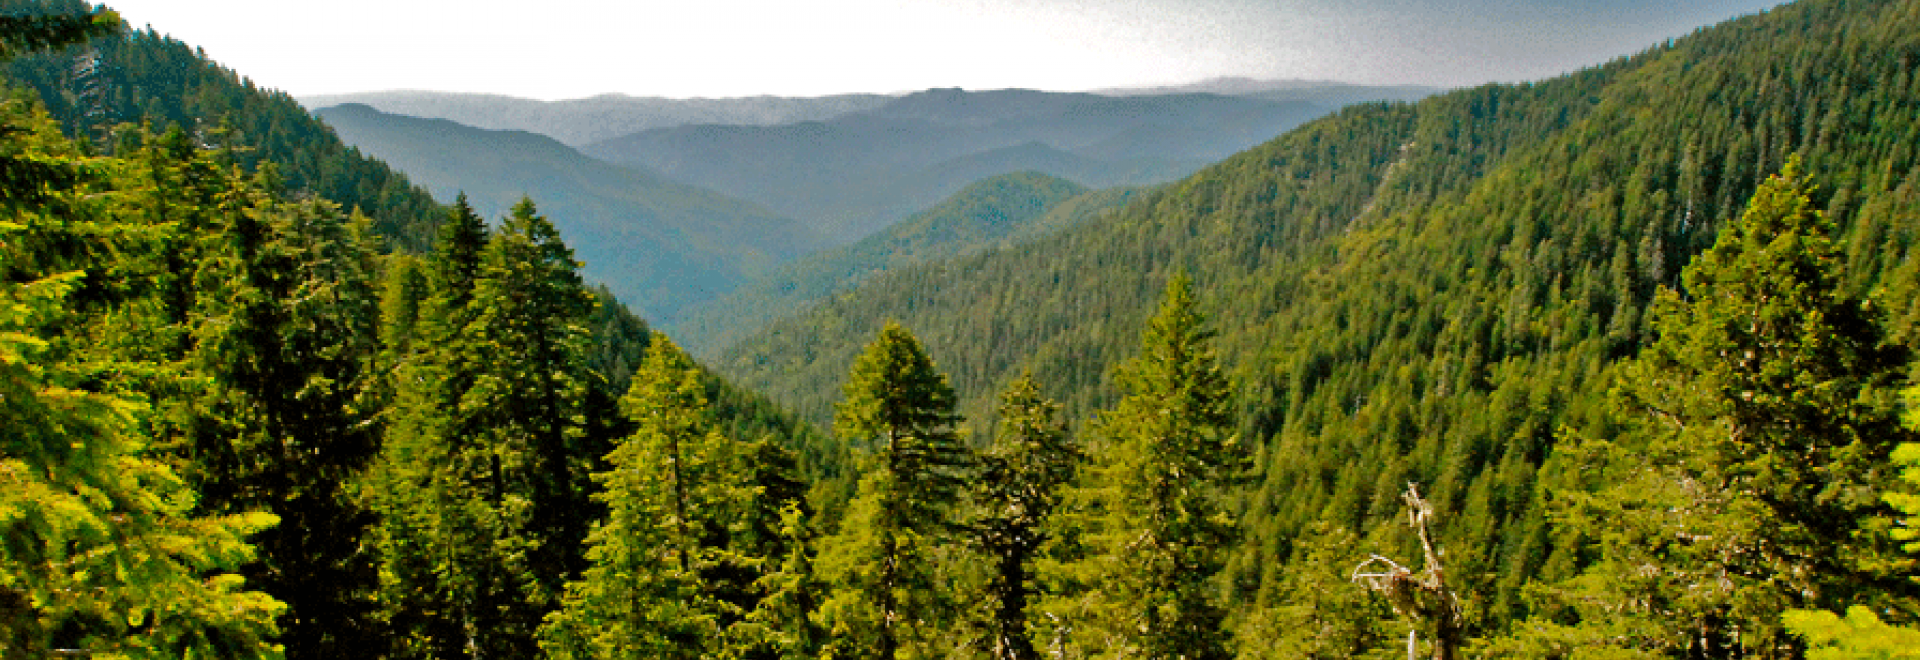 View down the watershed of the Smith River National Recreation Area